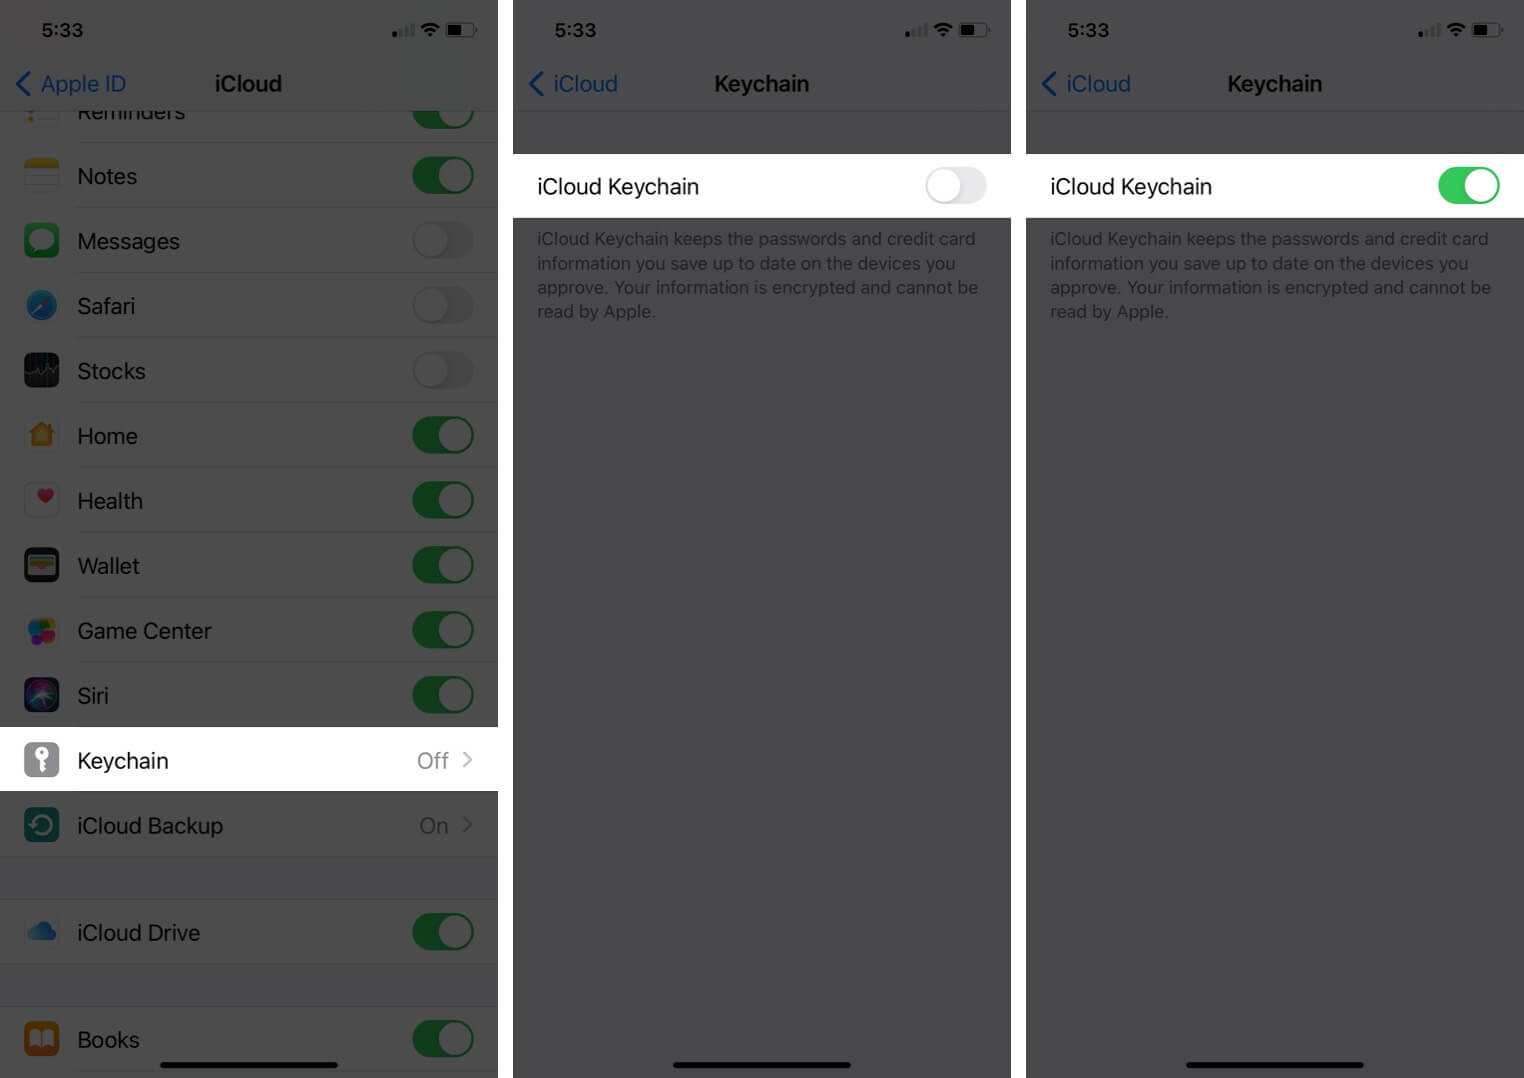 tap on keychain and turn on icloud keychain on iphone